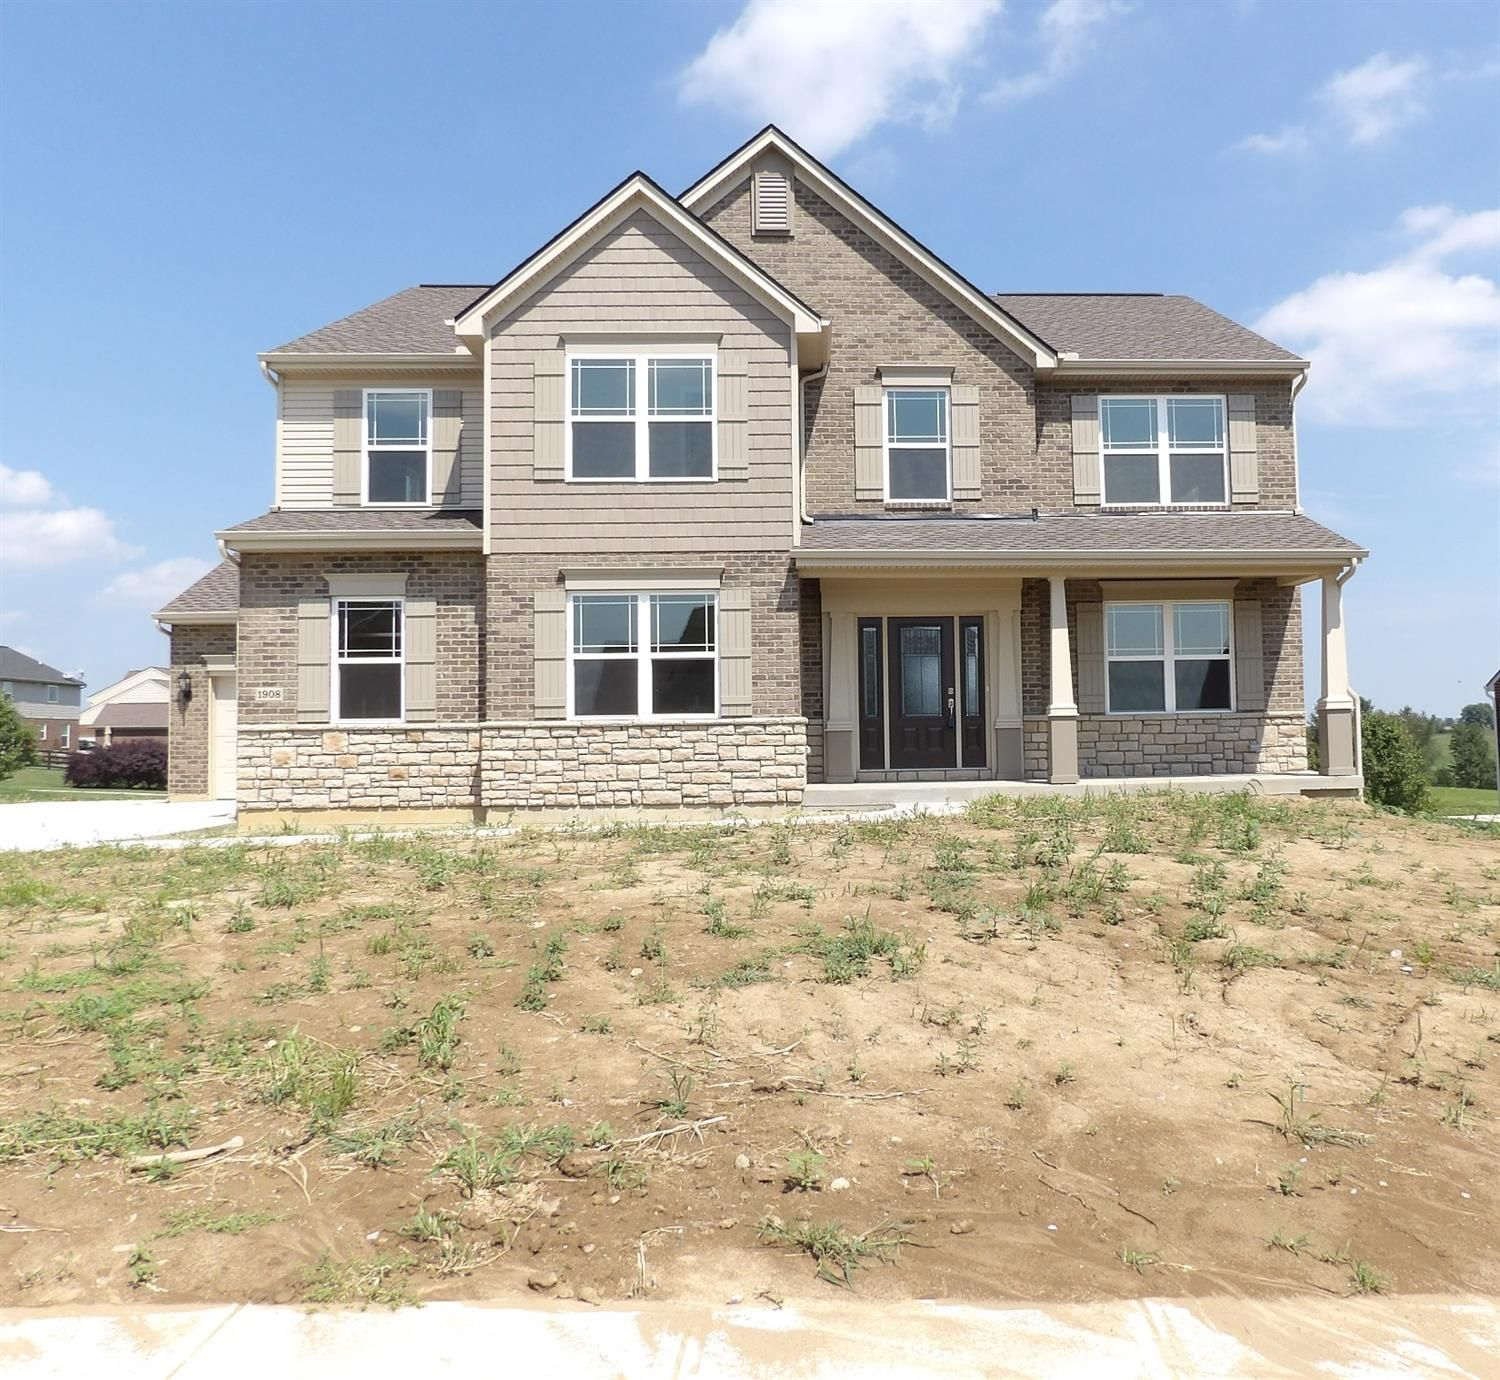 1908 Camelot Ct, Union, KY 41091. $359,900, Listing # 459228. See homes for sale information, school districts, neighborhoods in Union.